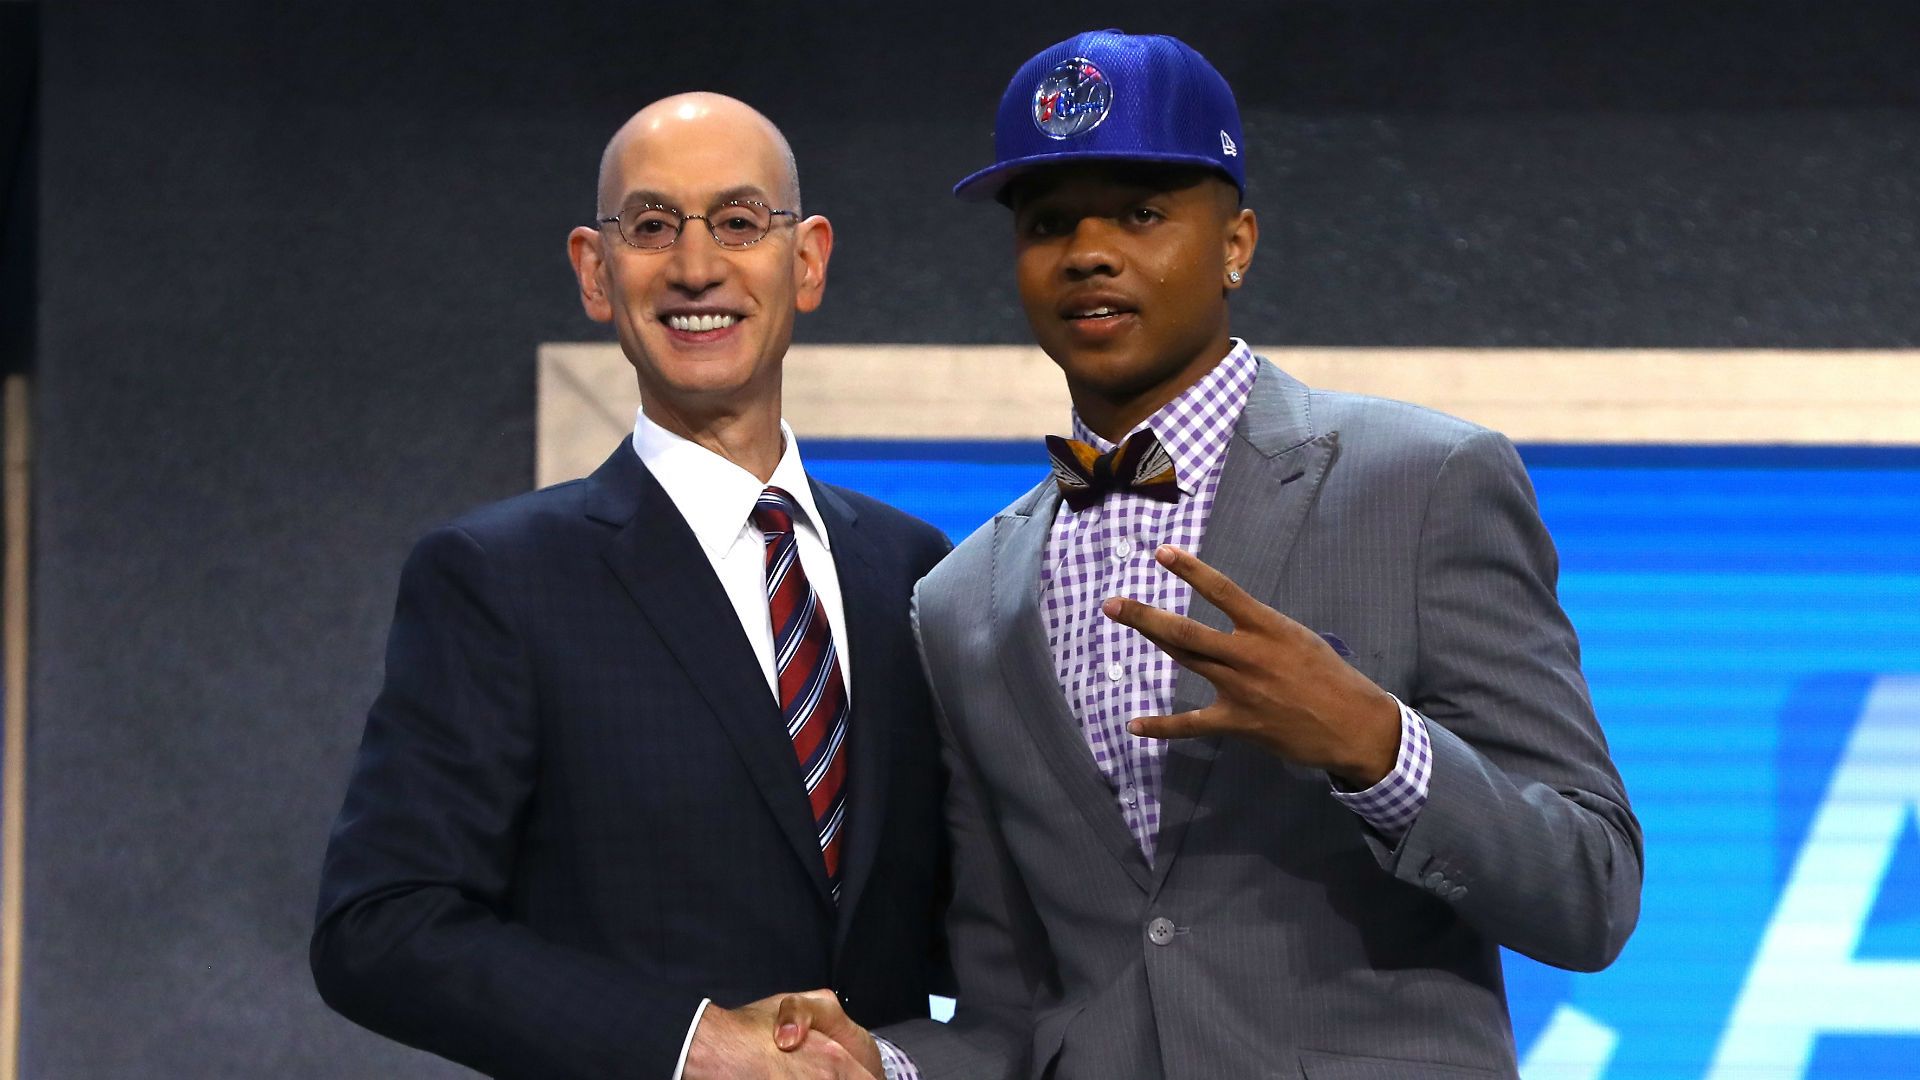 When is NBA Draft lottery? Best odds for No. 1 pick ahead of 2018 NBA Draft